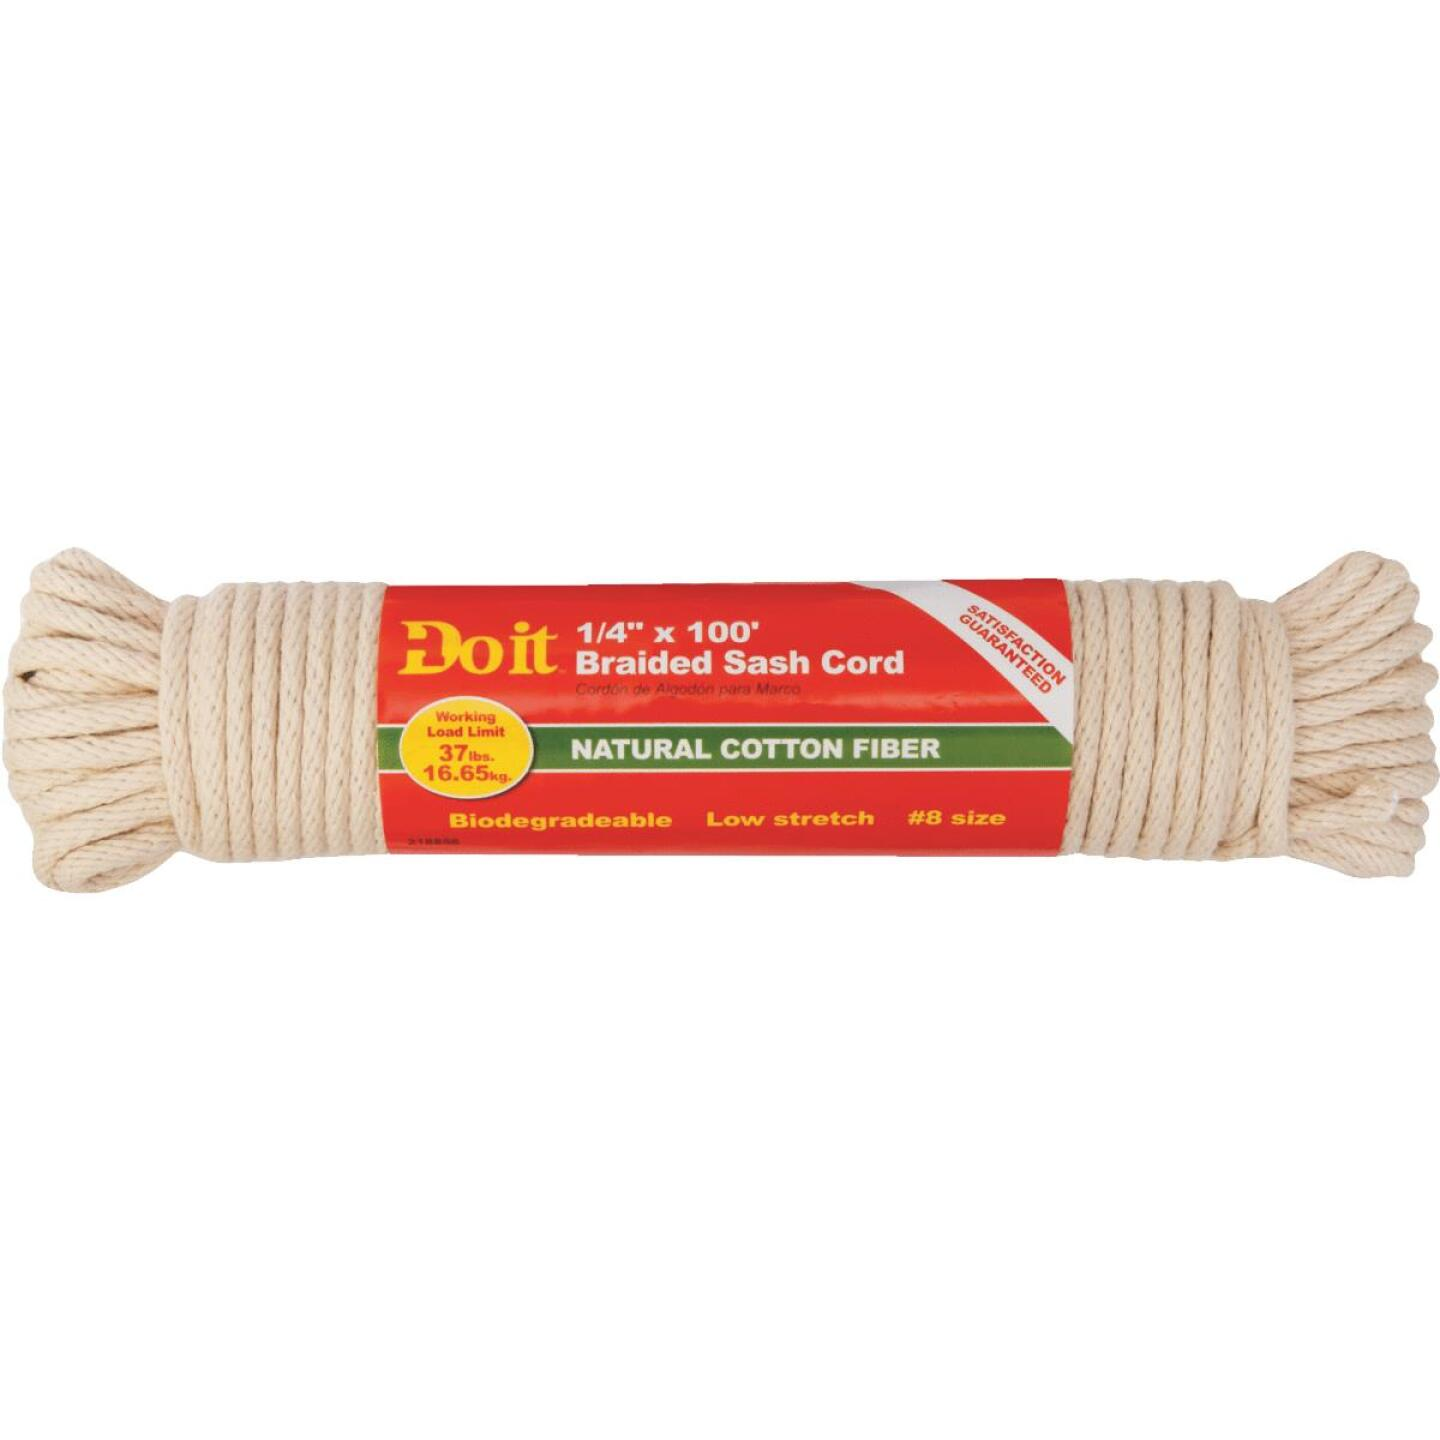 Do it 1/4 In. x 100 Ft. White Solid Braided Cotton Sash Cord Image 3